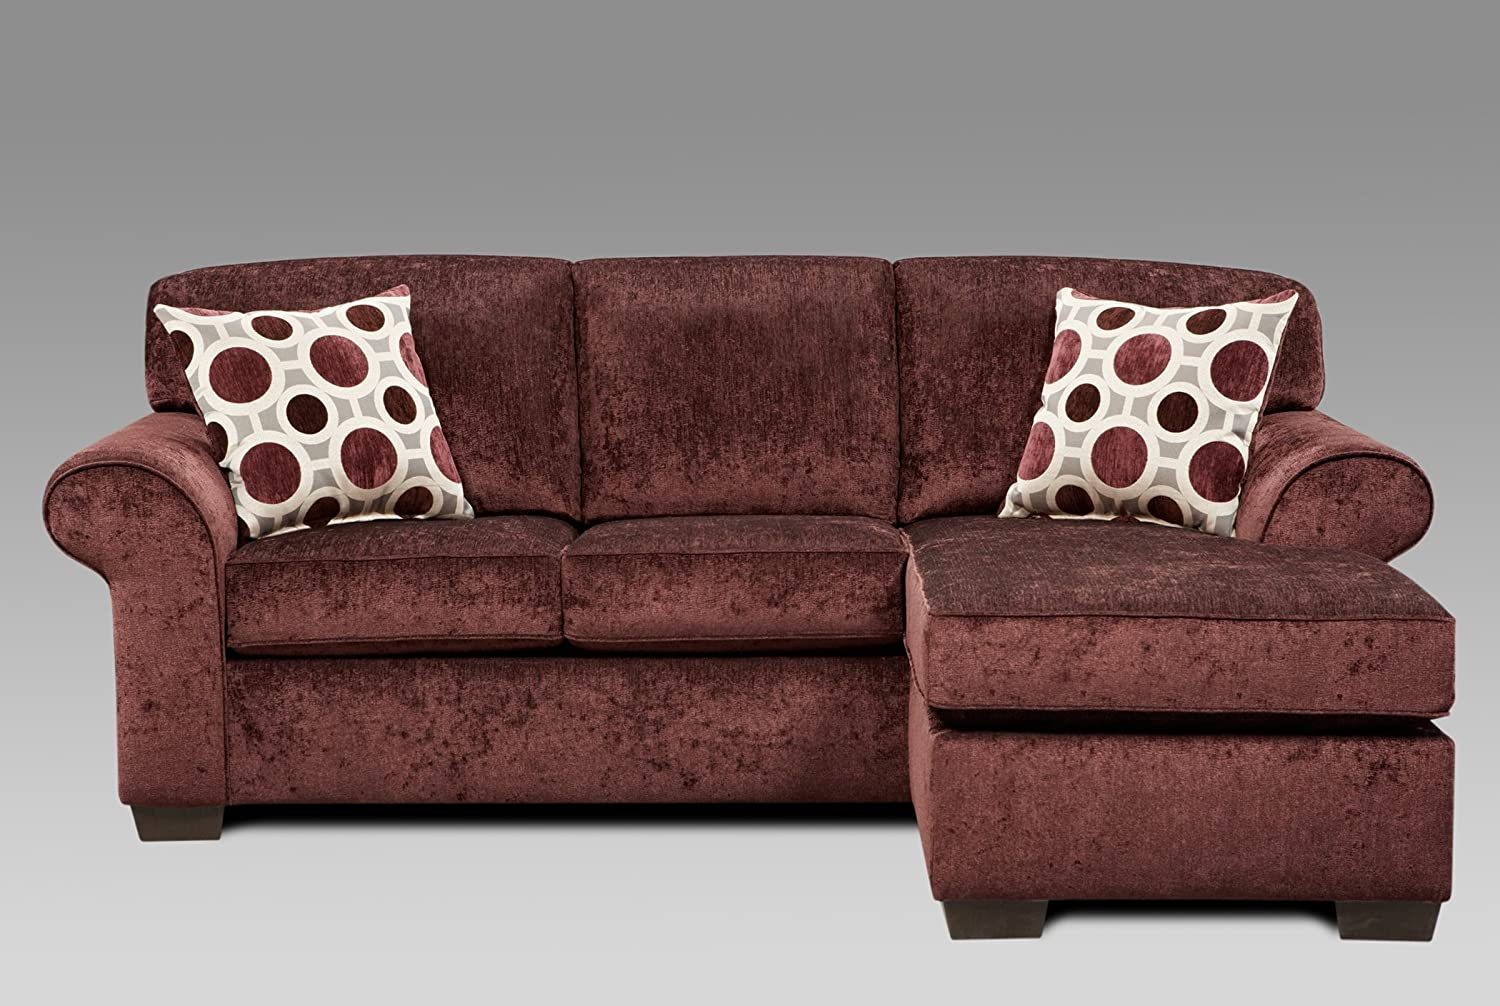 Amazon.com: Roundhill Furniture Fabric Sectional Sofa With 2 Pillows, Prism  Elderberry: Kitchen U0026 Dining